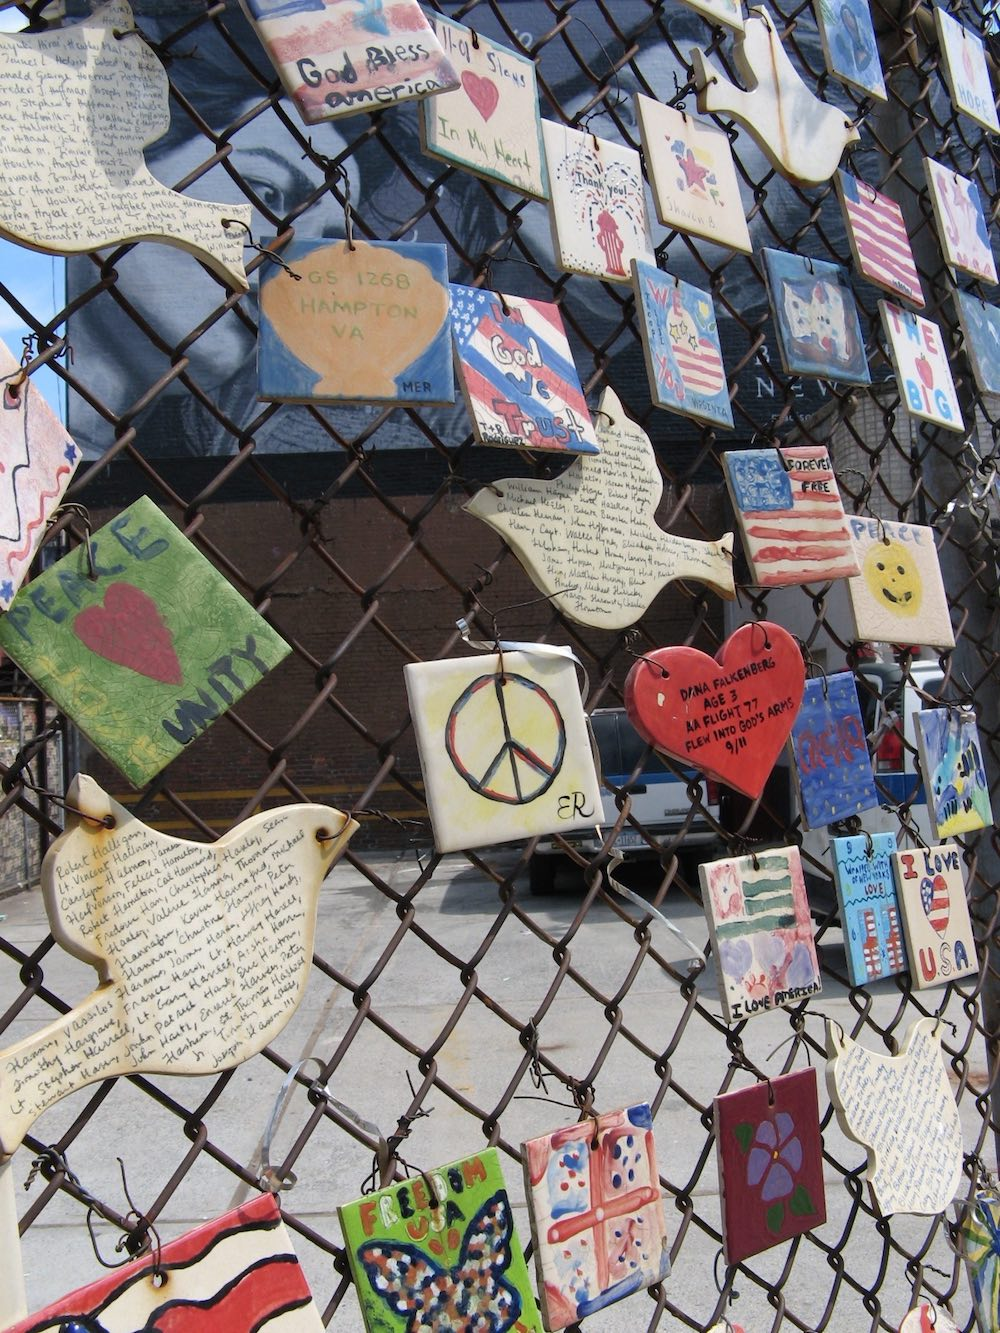 tiles people left on a face as a memorial to 9-11